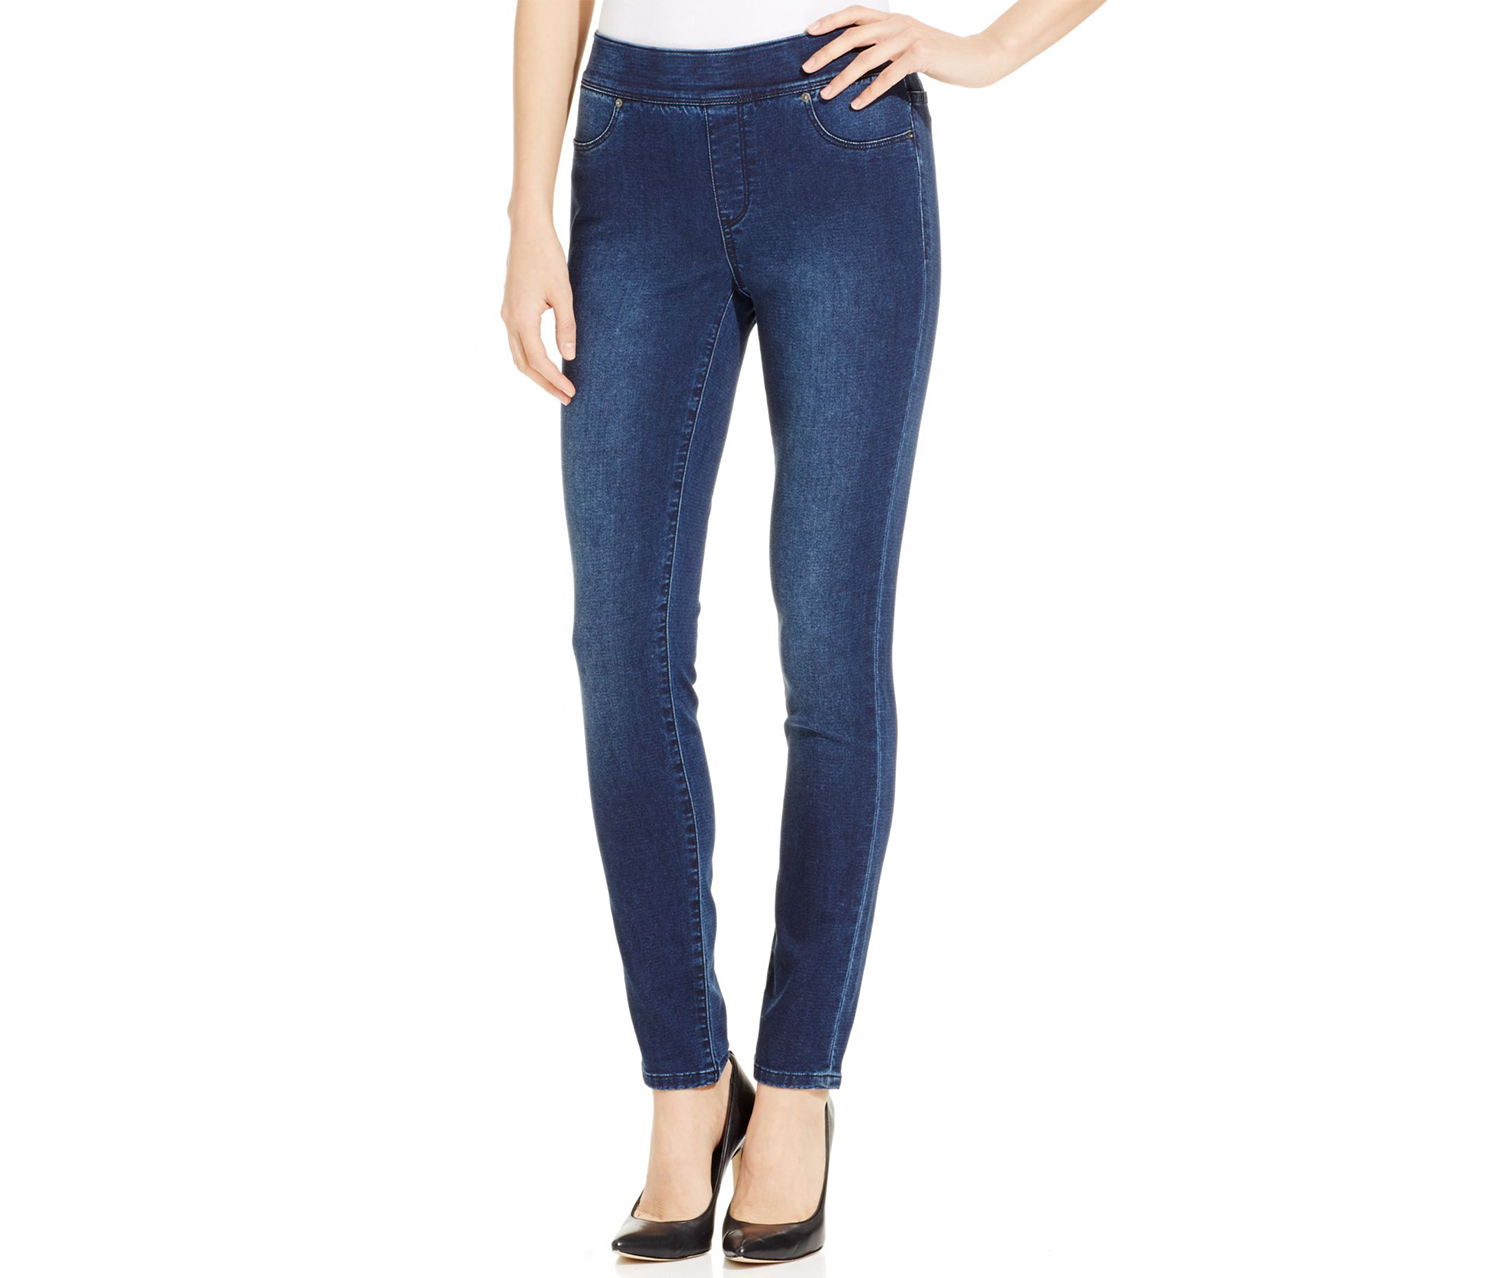 Calvin Klein Jeans Super Soft Denim Jeggings, Midnight Wash